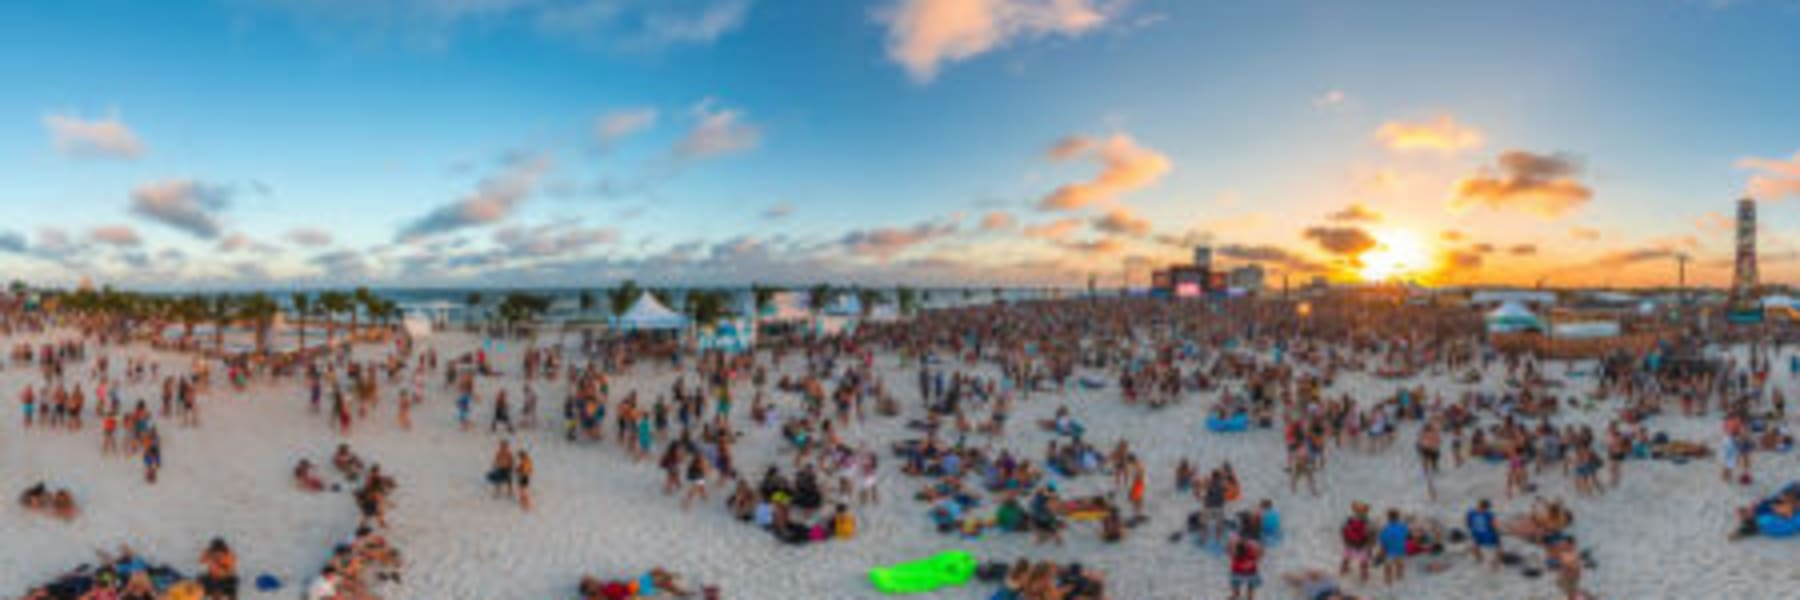 5f70506ac5a5 Buy a Hangout Music Fest Ticket & Get 15% Off Next Concert - StubHub